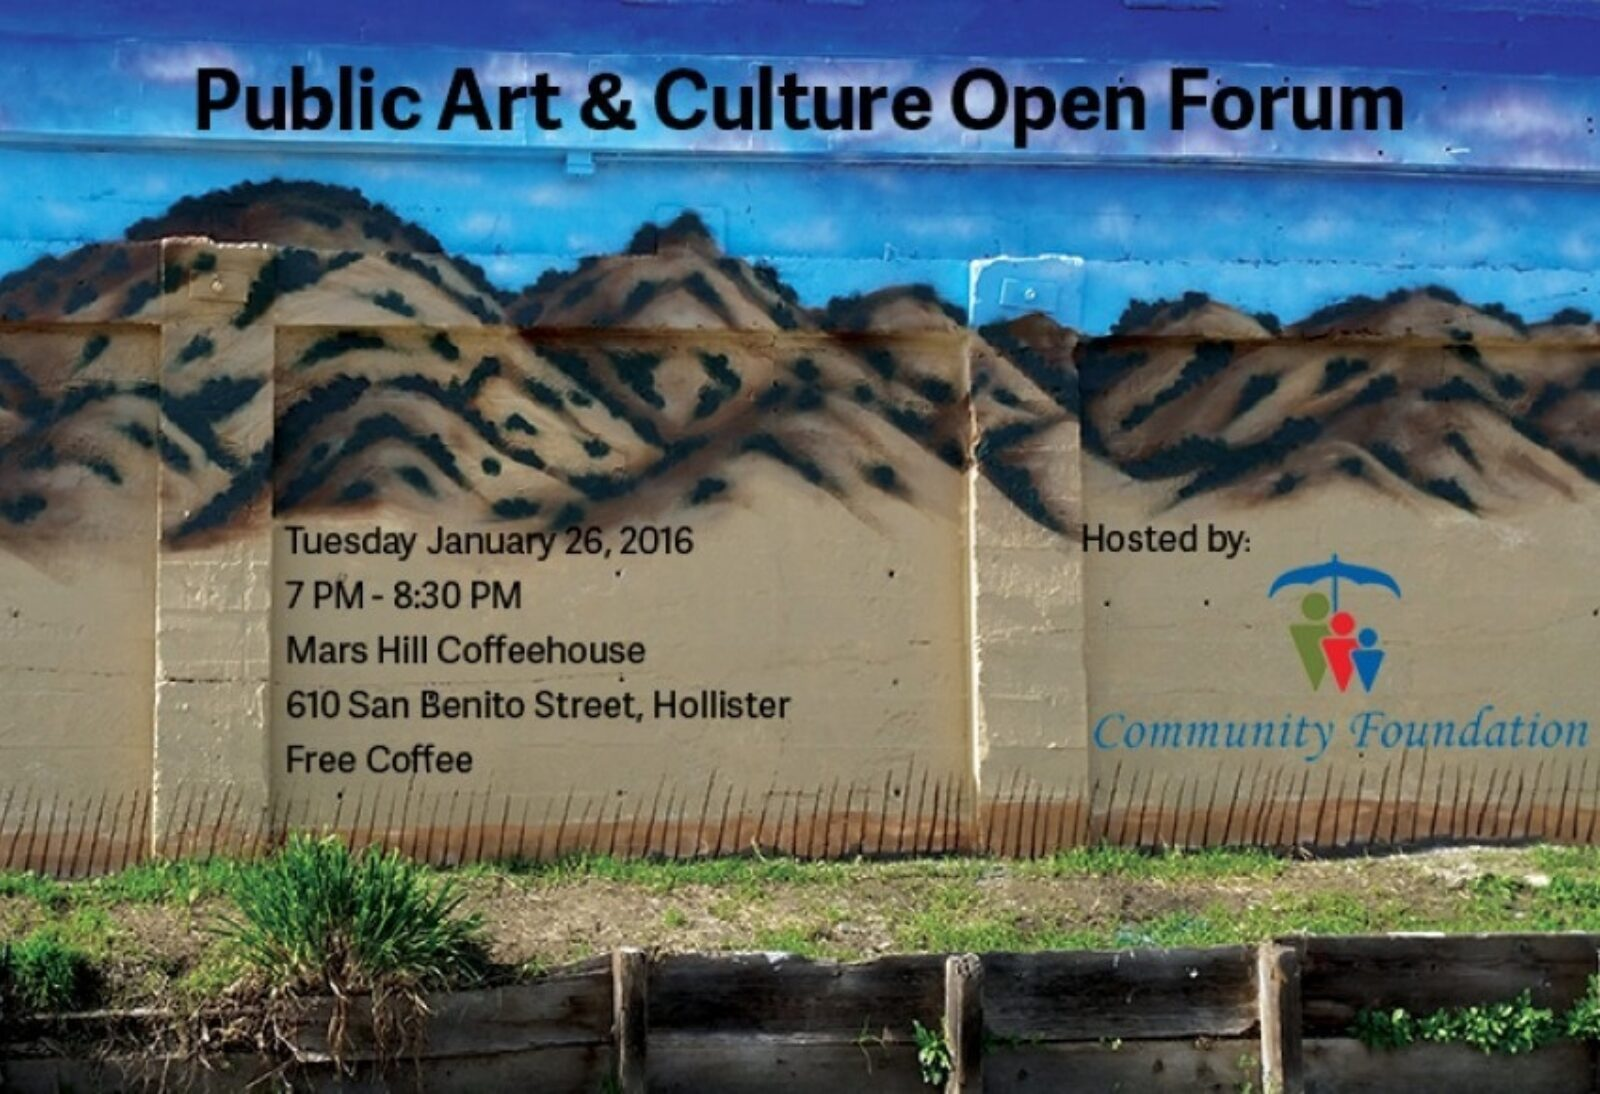 Community Cares About Public Art & Culture